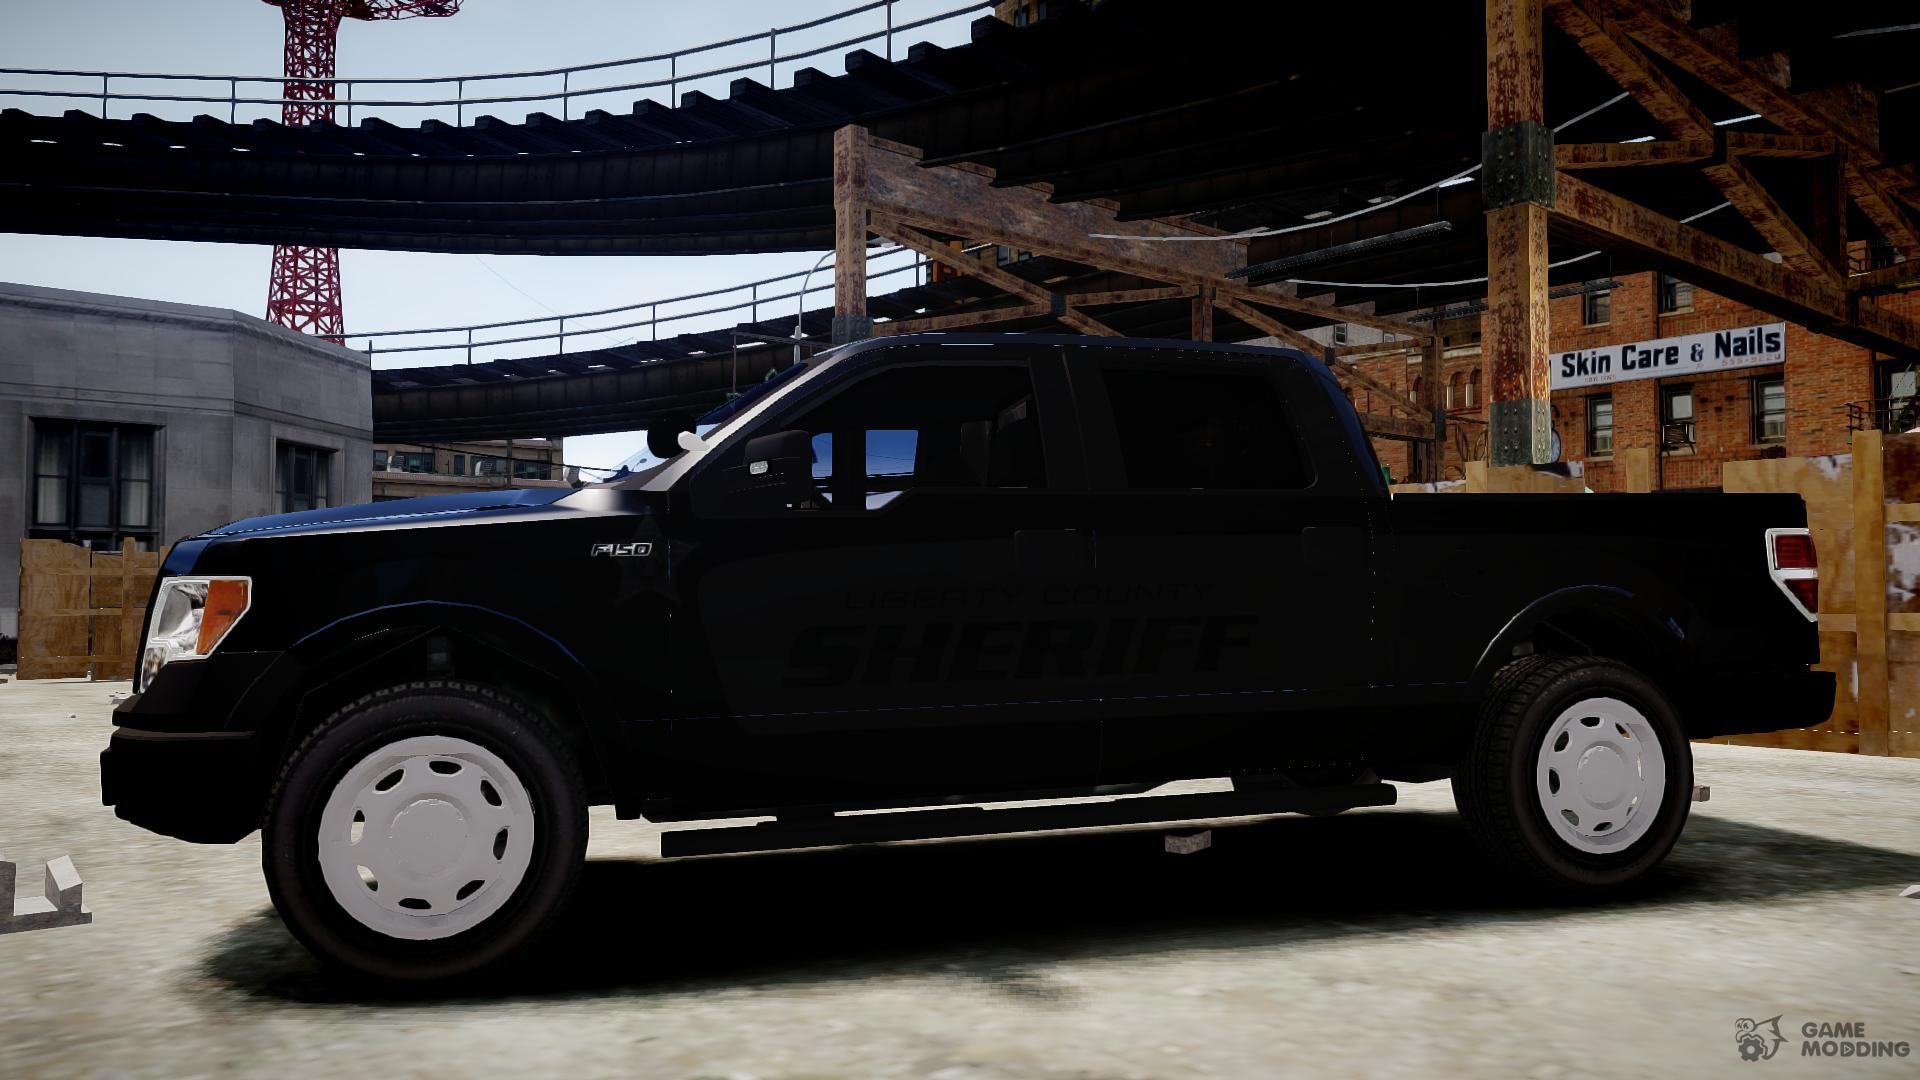 Ford f150 liberty county sheriff slicktop for gta 4 side view